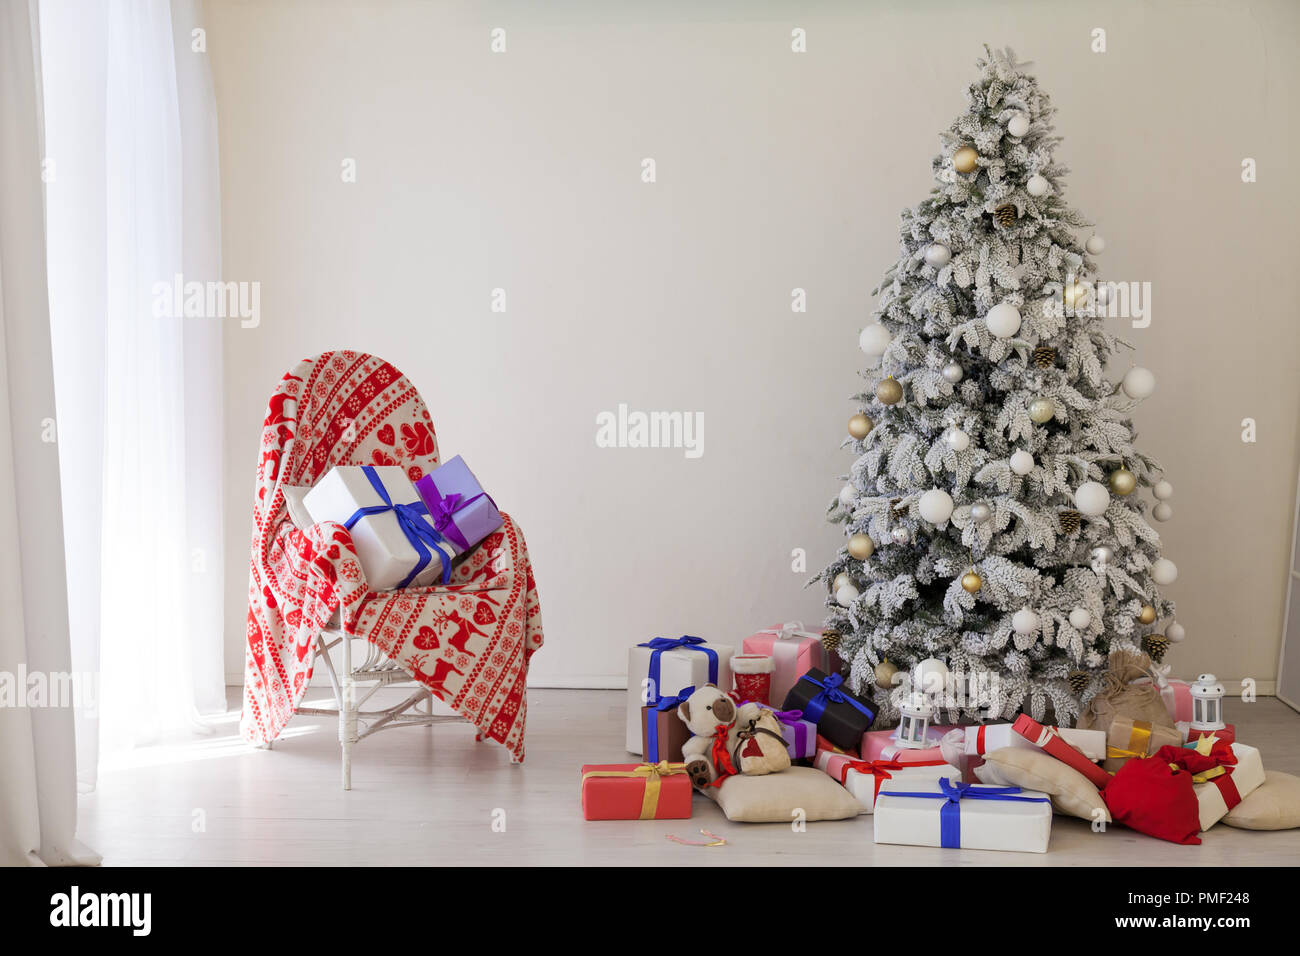 apartment decor for the new year Christmas tree and gifts - Stock Image